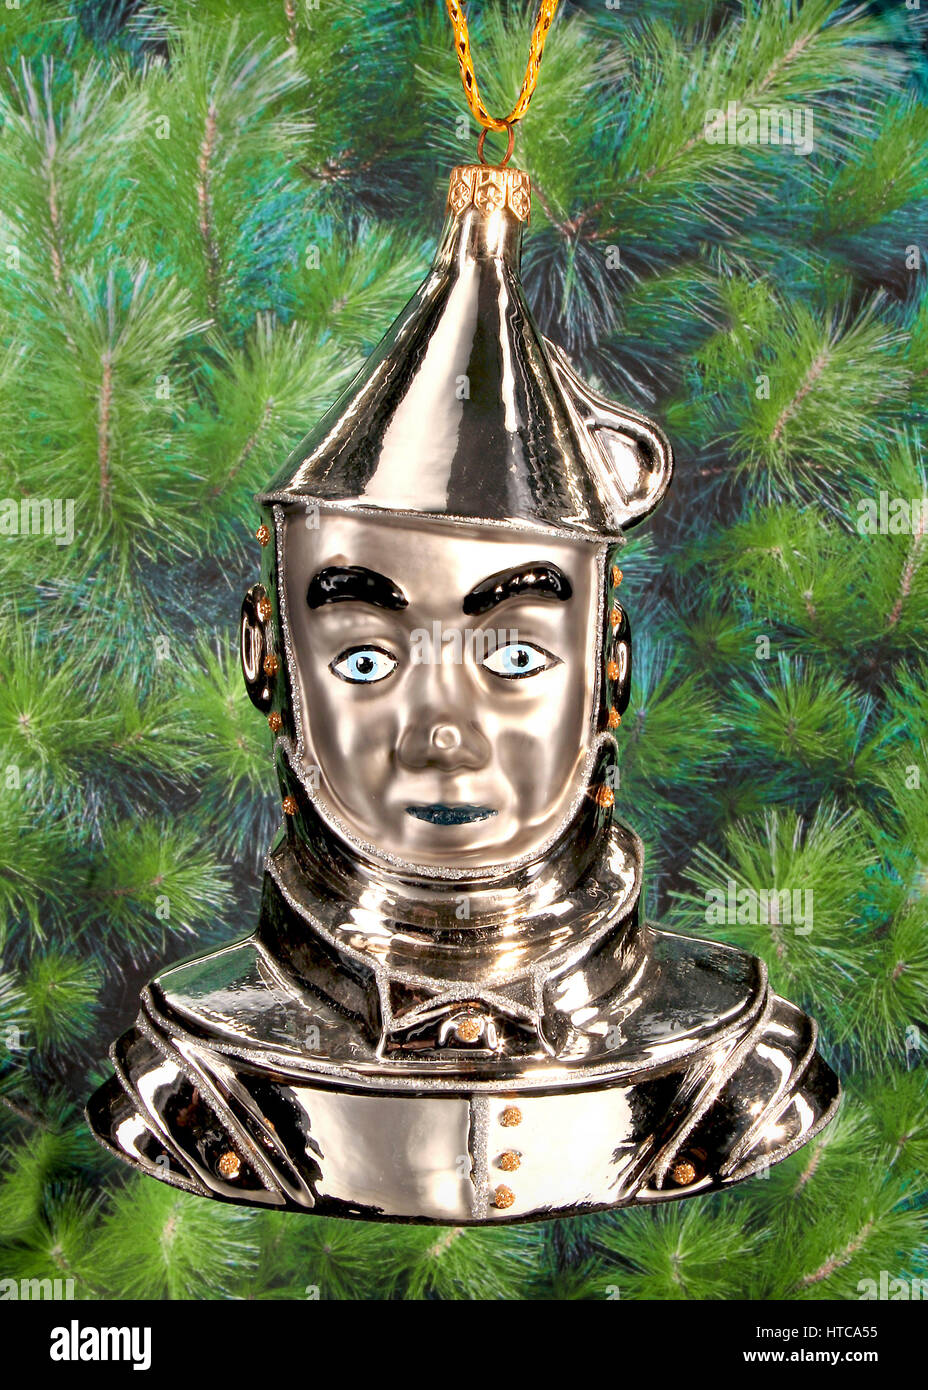 Christmas bauble in the shape of the Tin Man from the Wizard of Oz - Stock Image